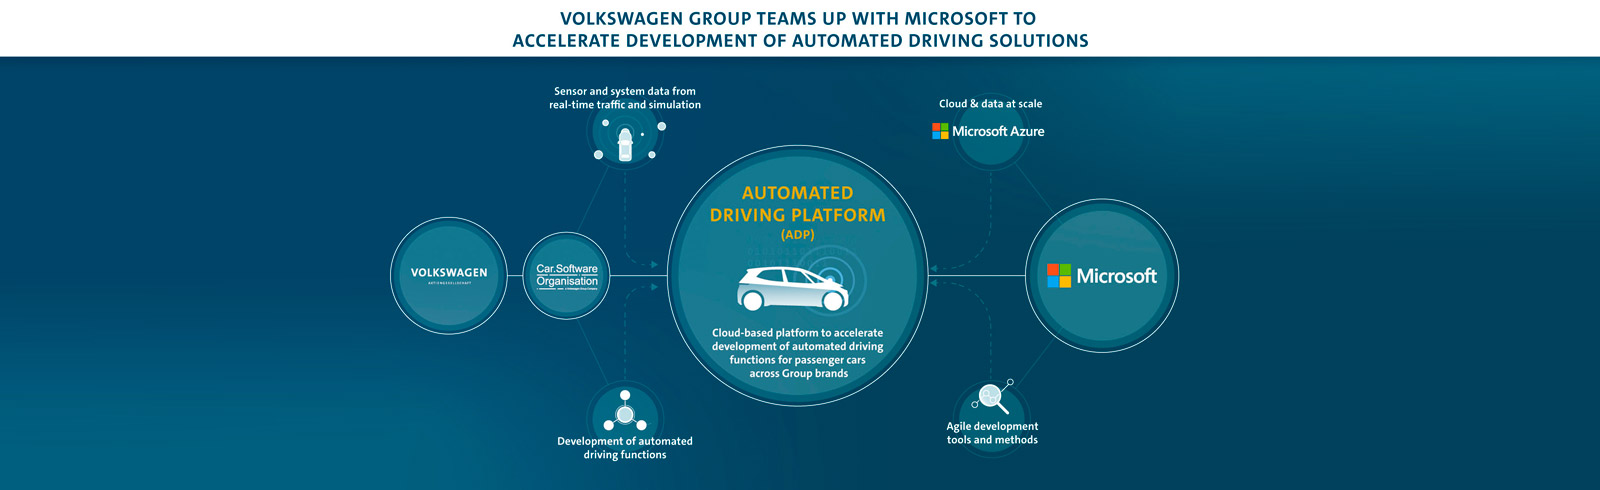 Volkswagen and Microsoft working together on automated driving solutions